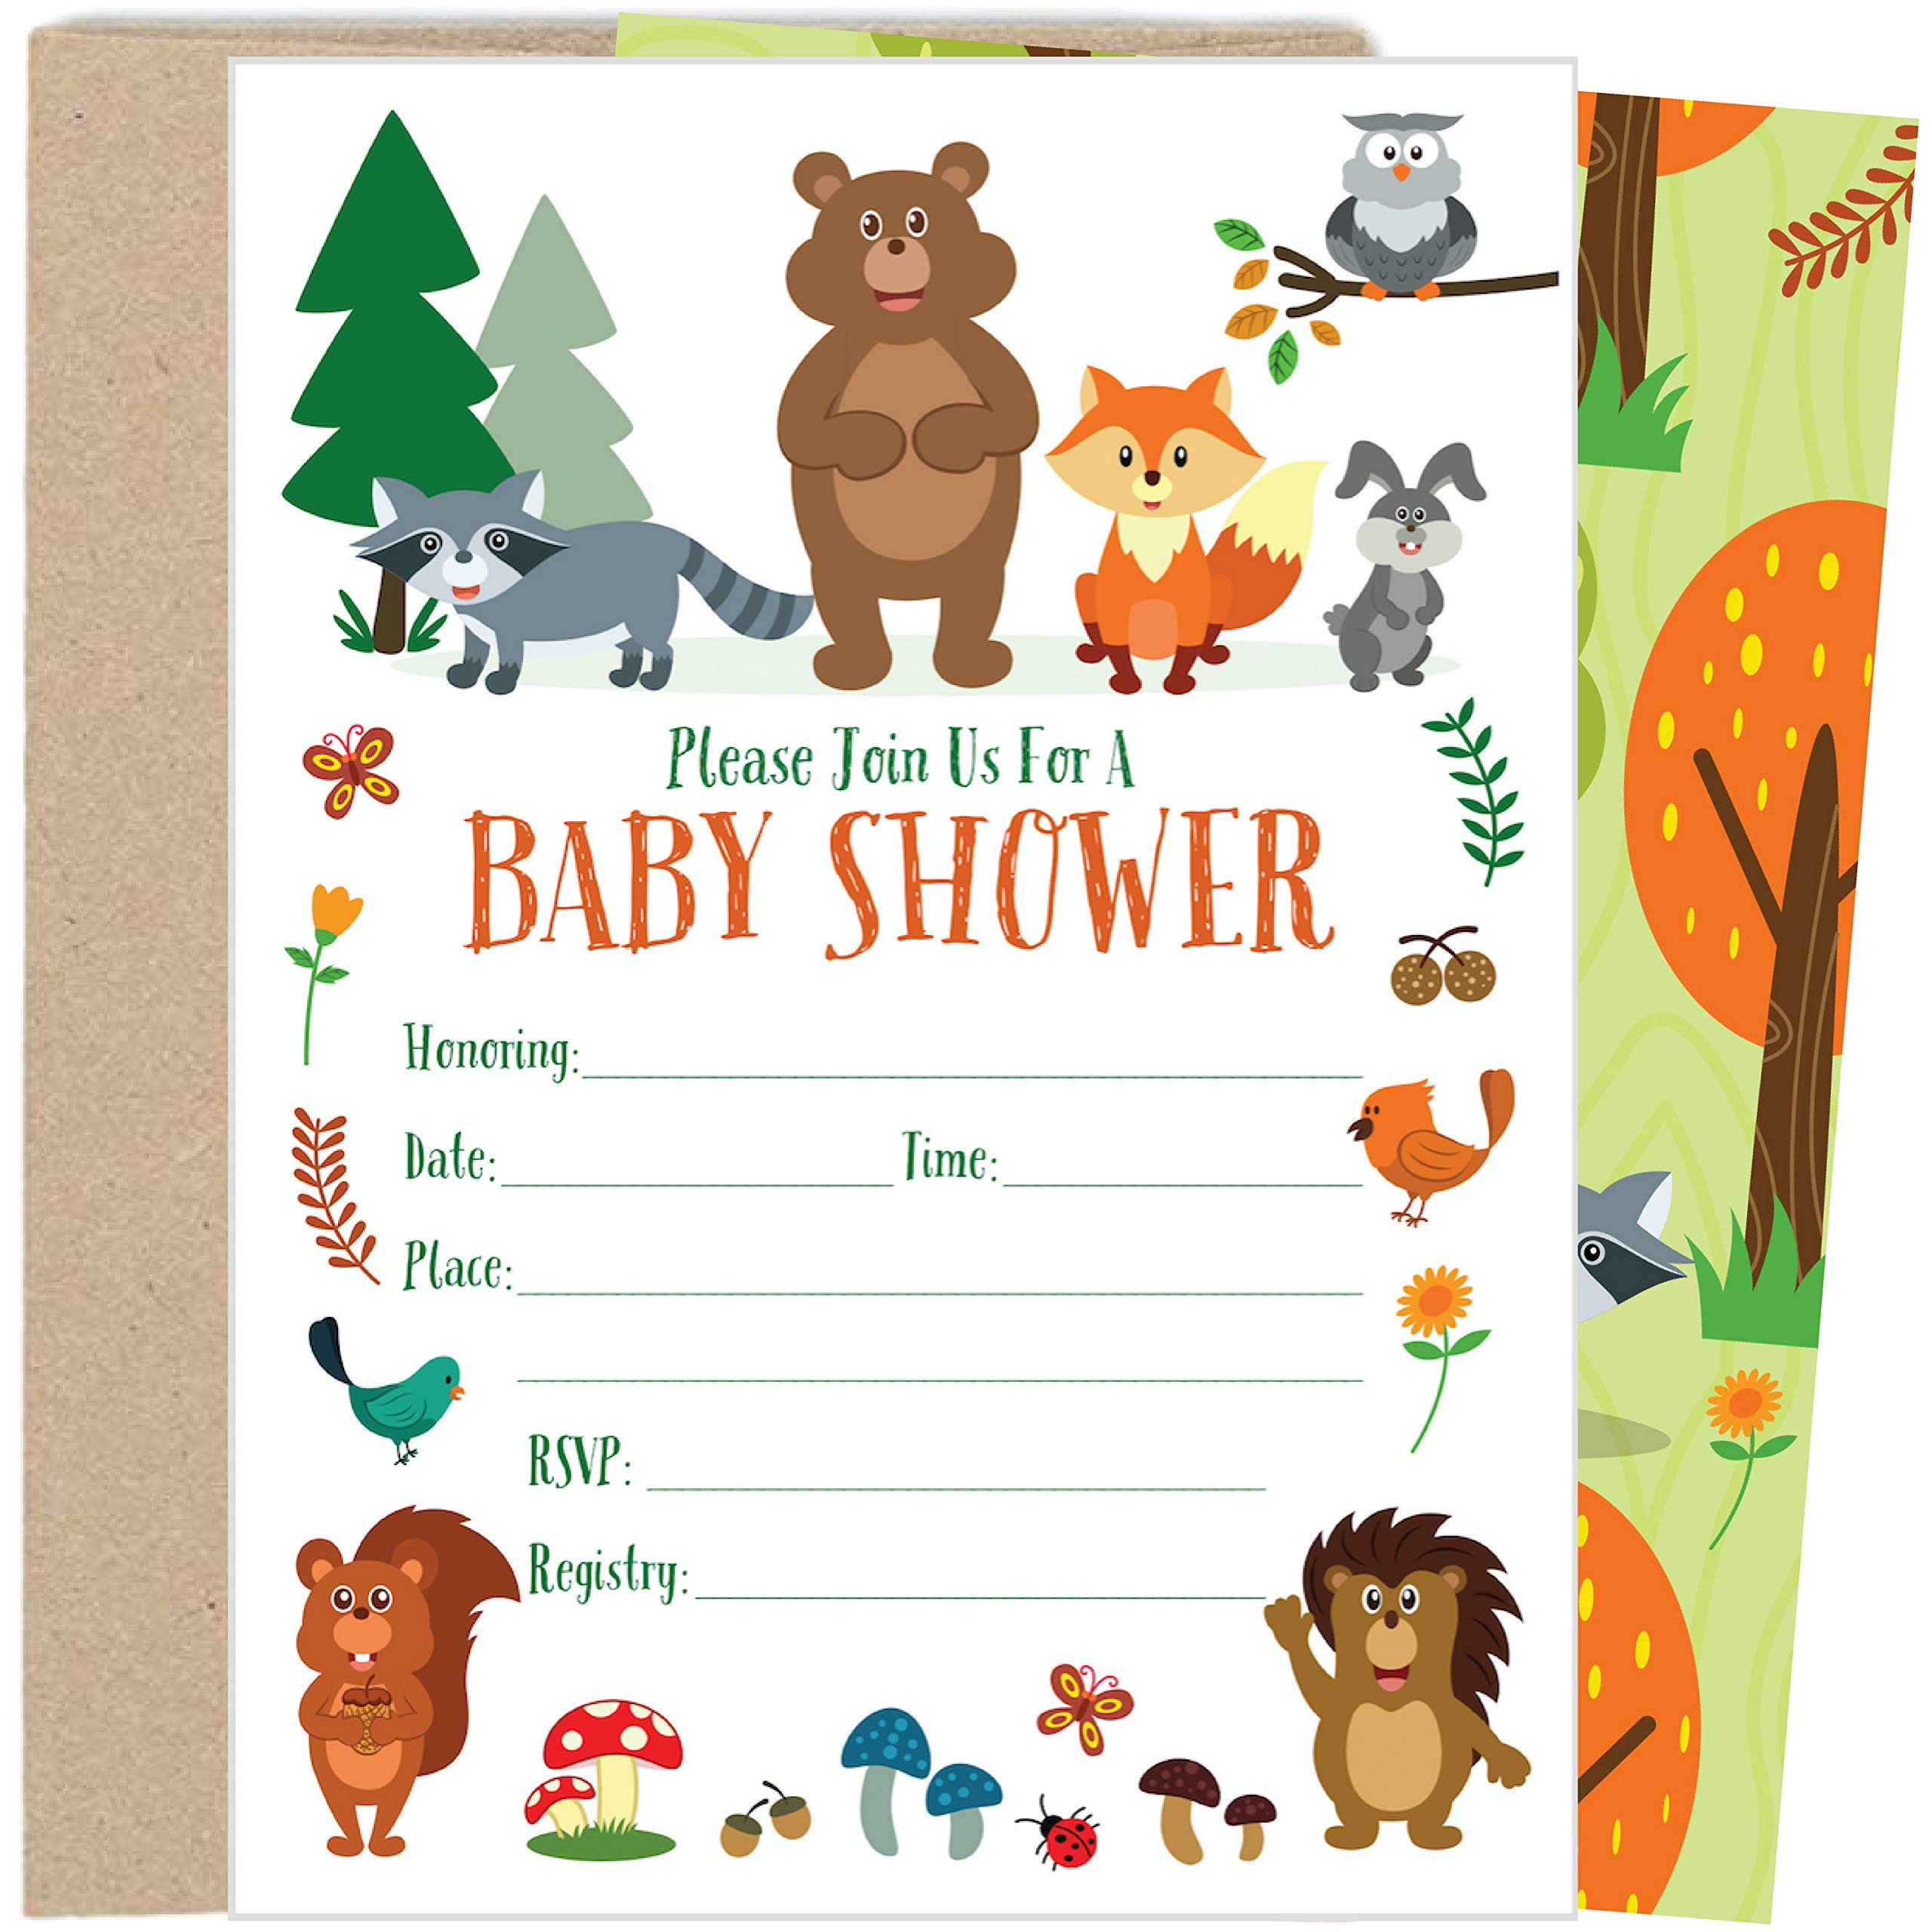 25 Woodland Baby Shower Invitations with Envelopes (5x7 inch)